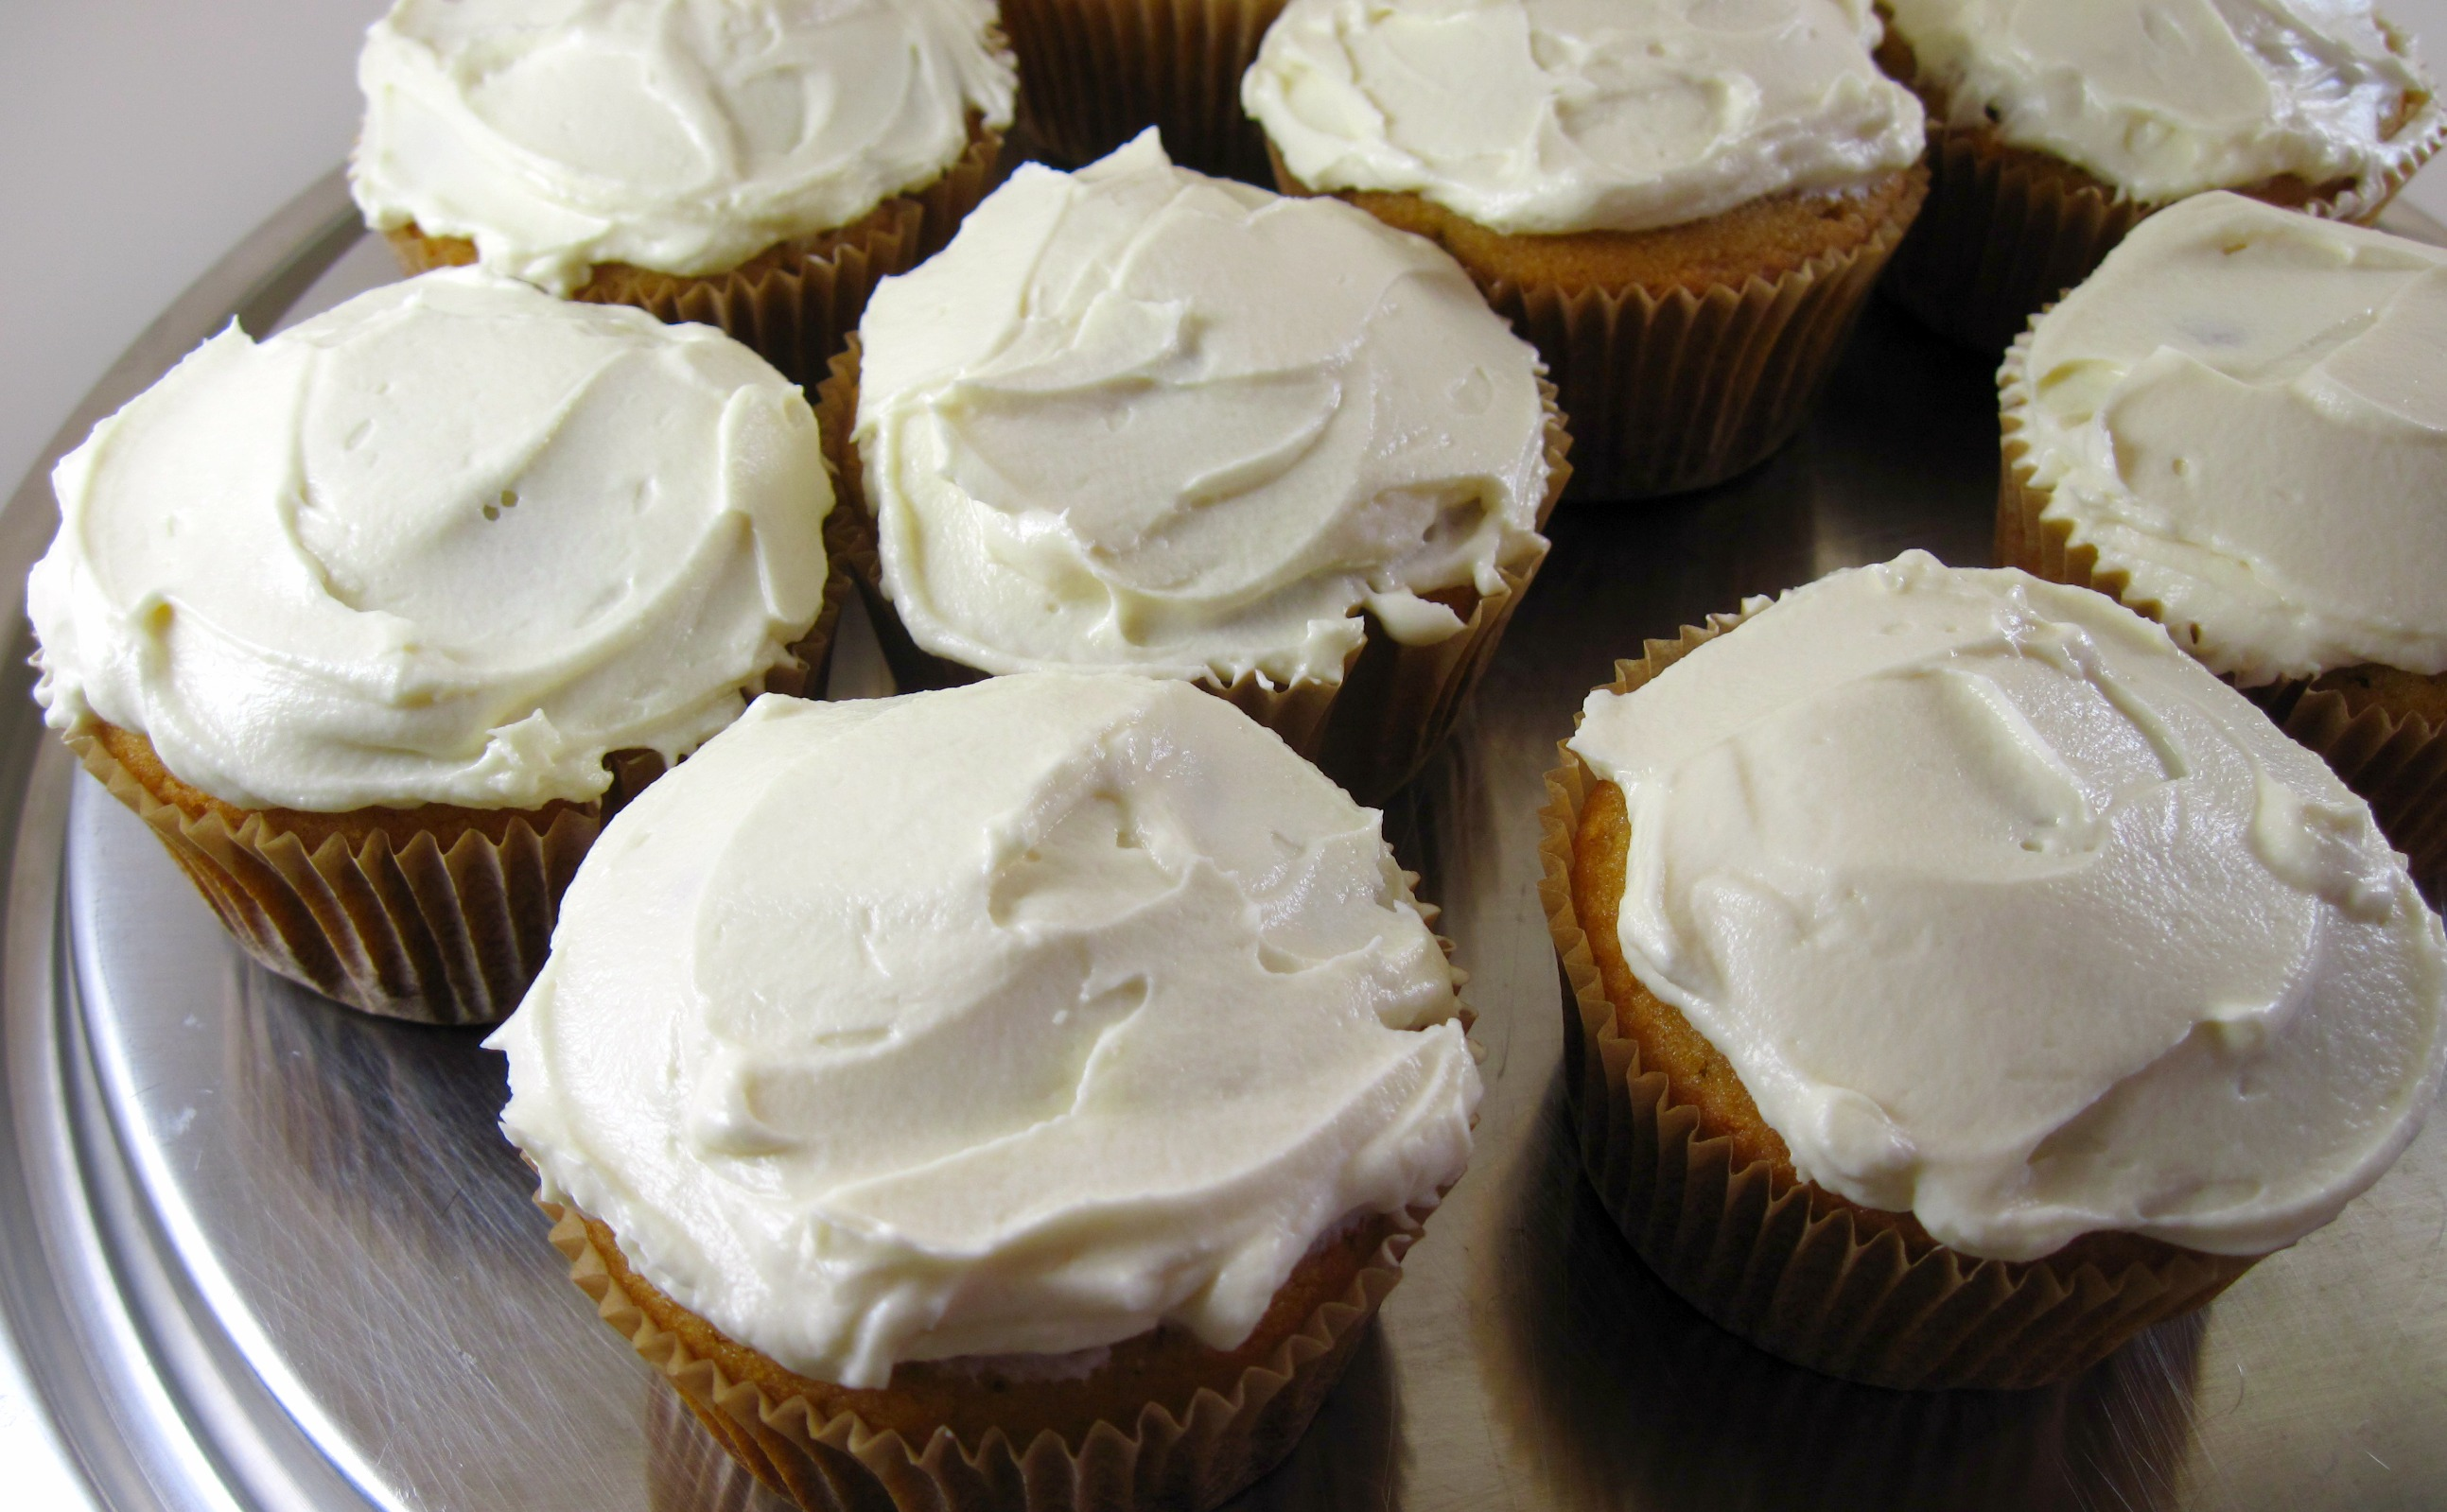 http://kathdedon.files.wordpress.com/2012/04/vanilla-cupcakes-frosted.jpg